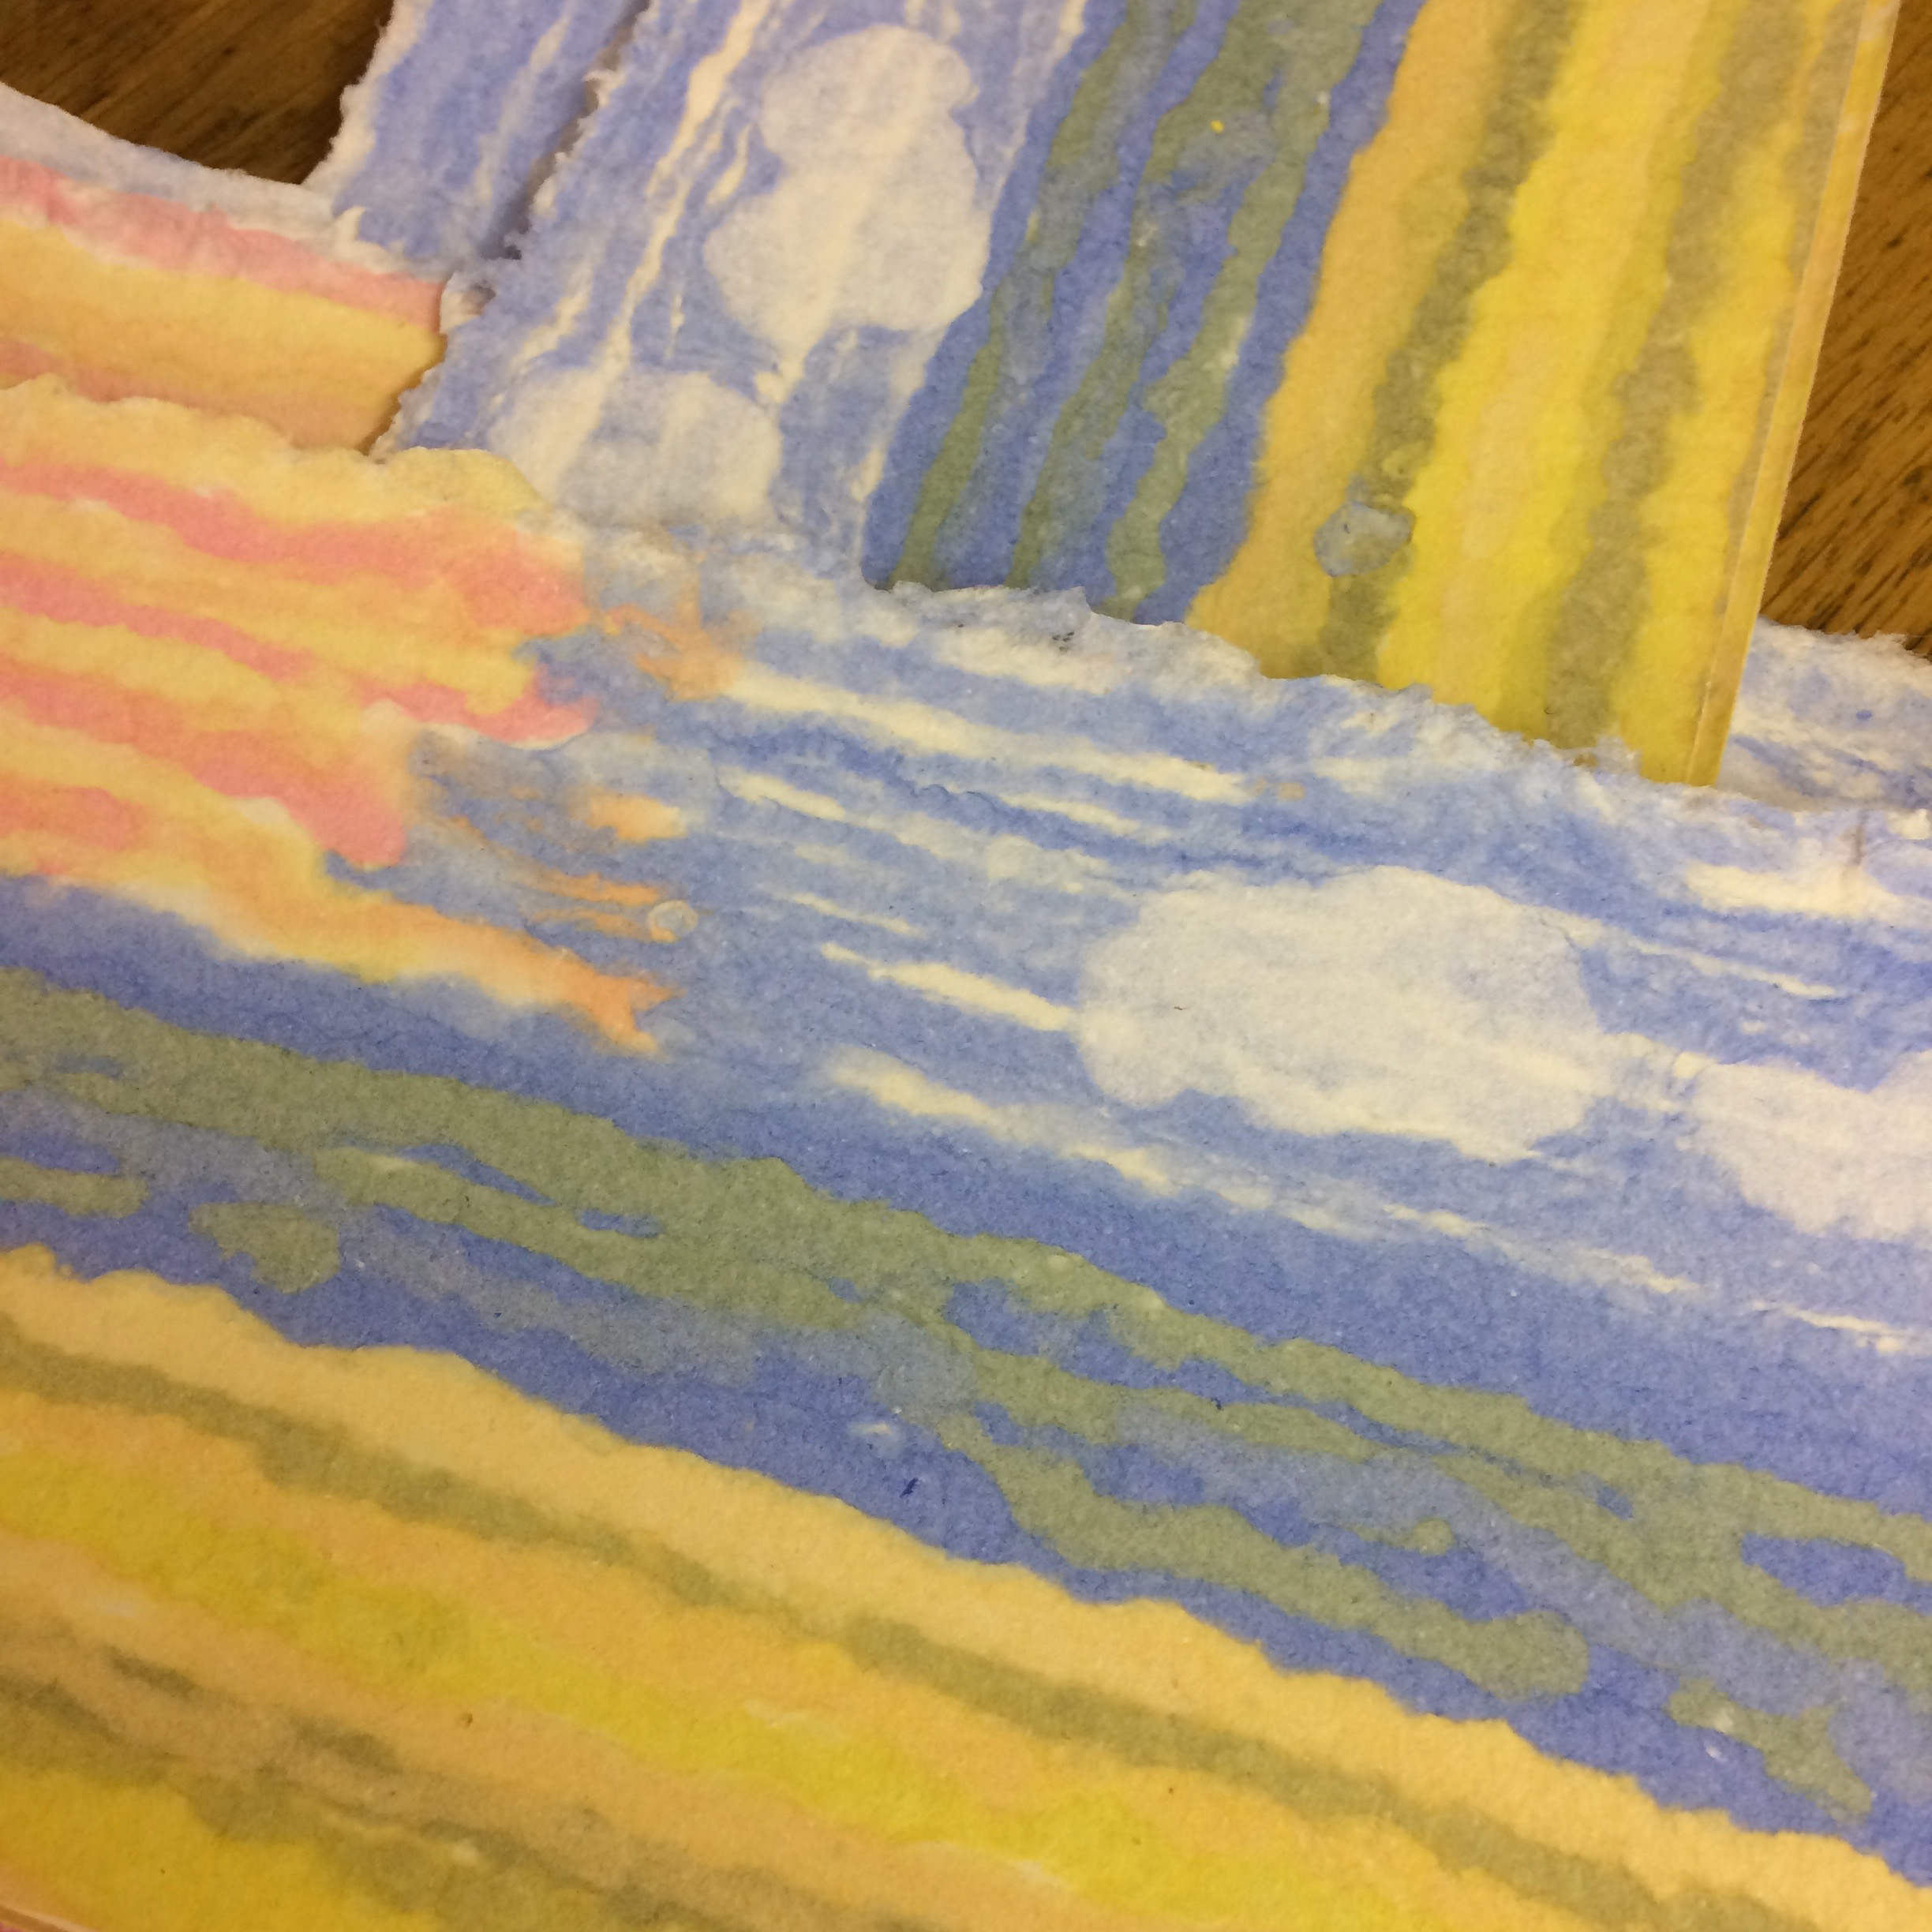 Tidekettle paper making photo 2